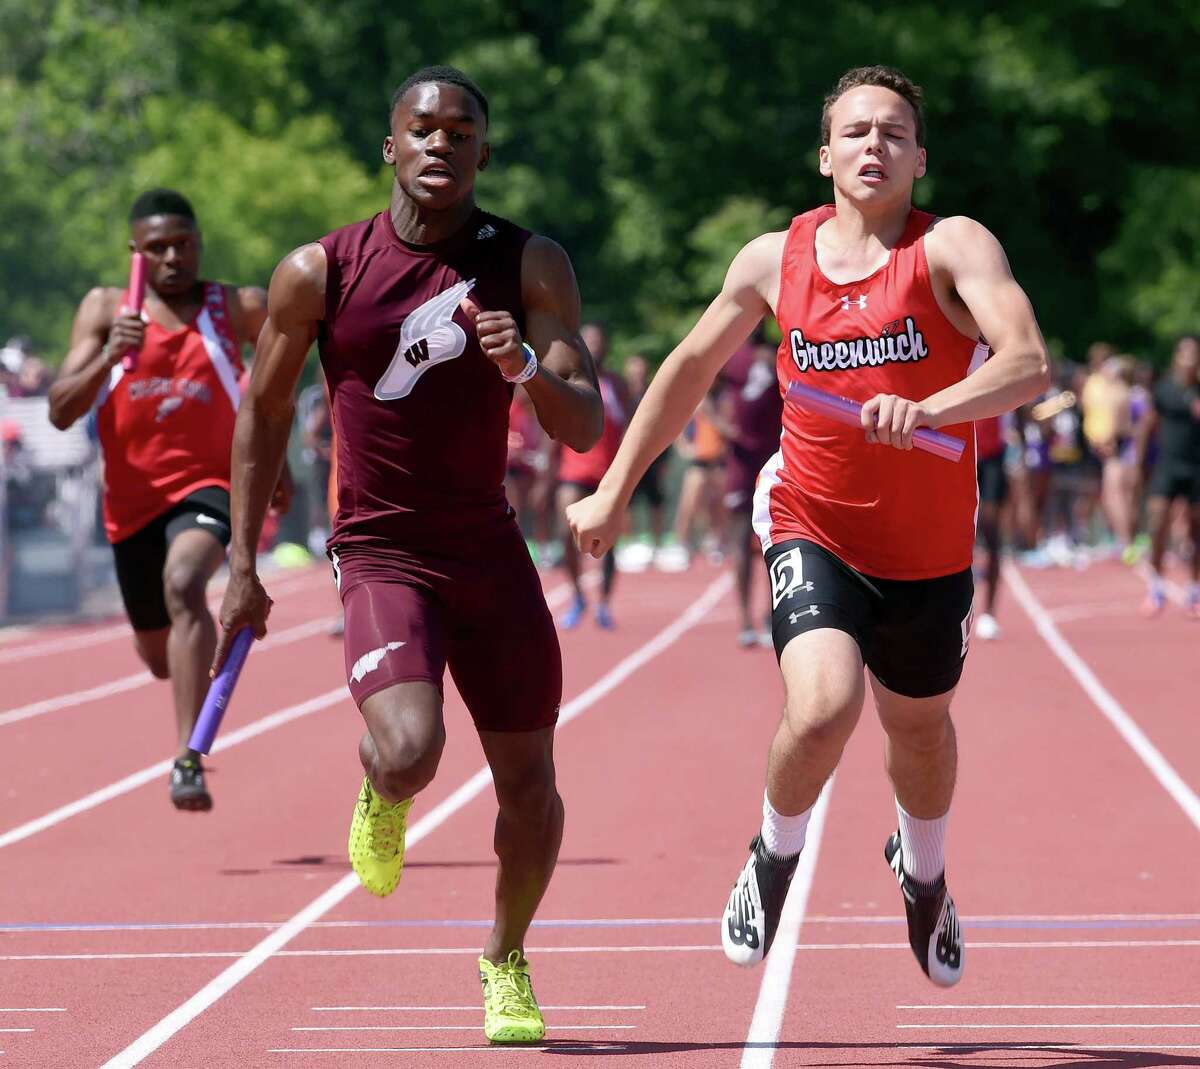 Greenwich's Zane Robinson-Nye (right) runs the last leg of the 4x100-meter relay to a win in the CIAC State Open Outdoor Track & Field Championship on Monday in New Britain.